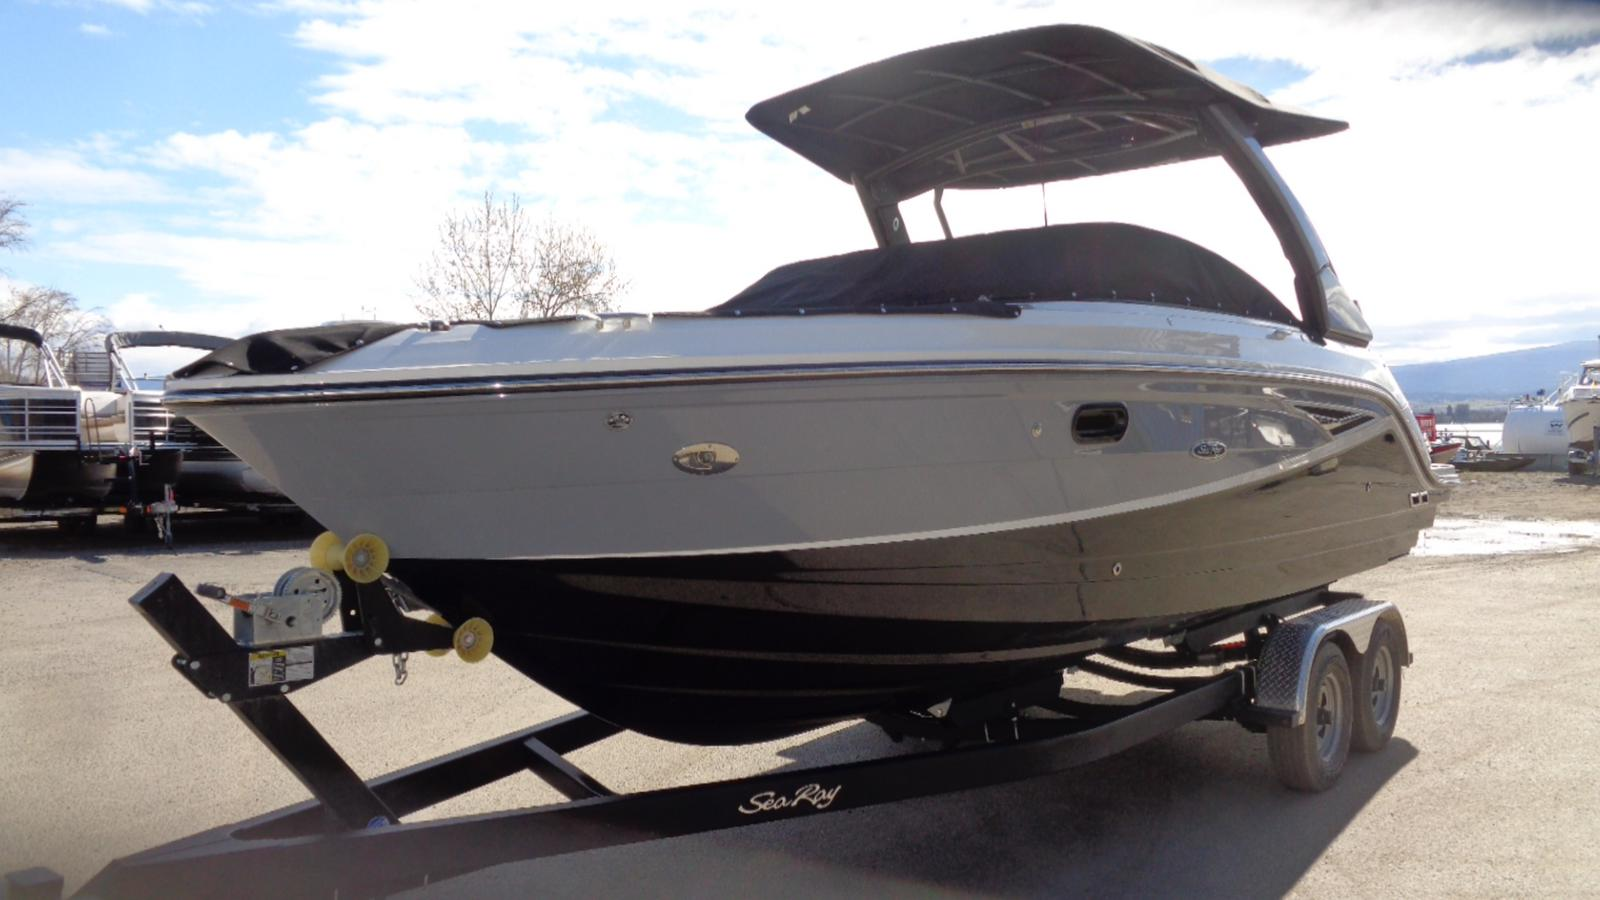 2019 Sea Ray boat for sale, model of the boat is SLX 250 & Image # 3 of 11